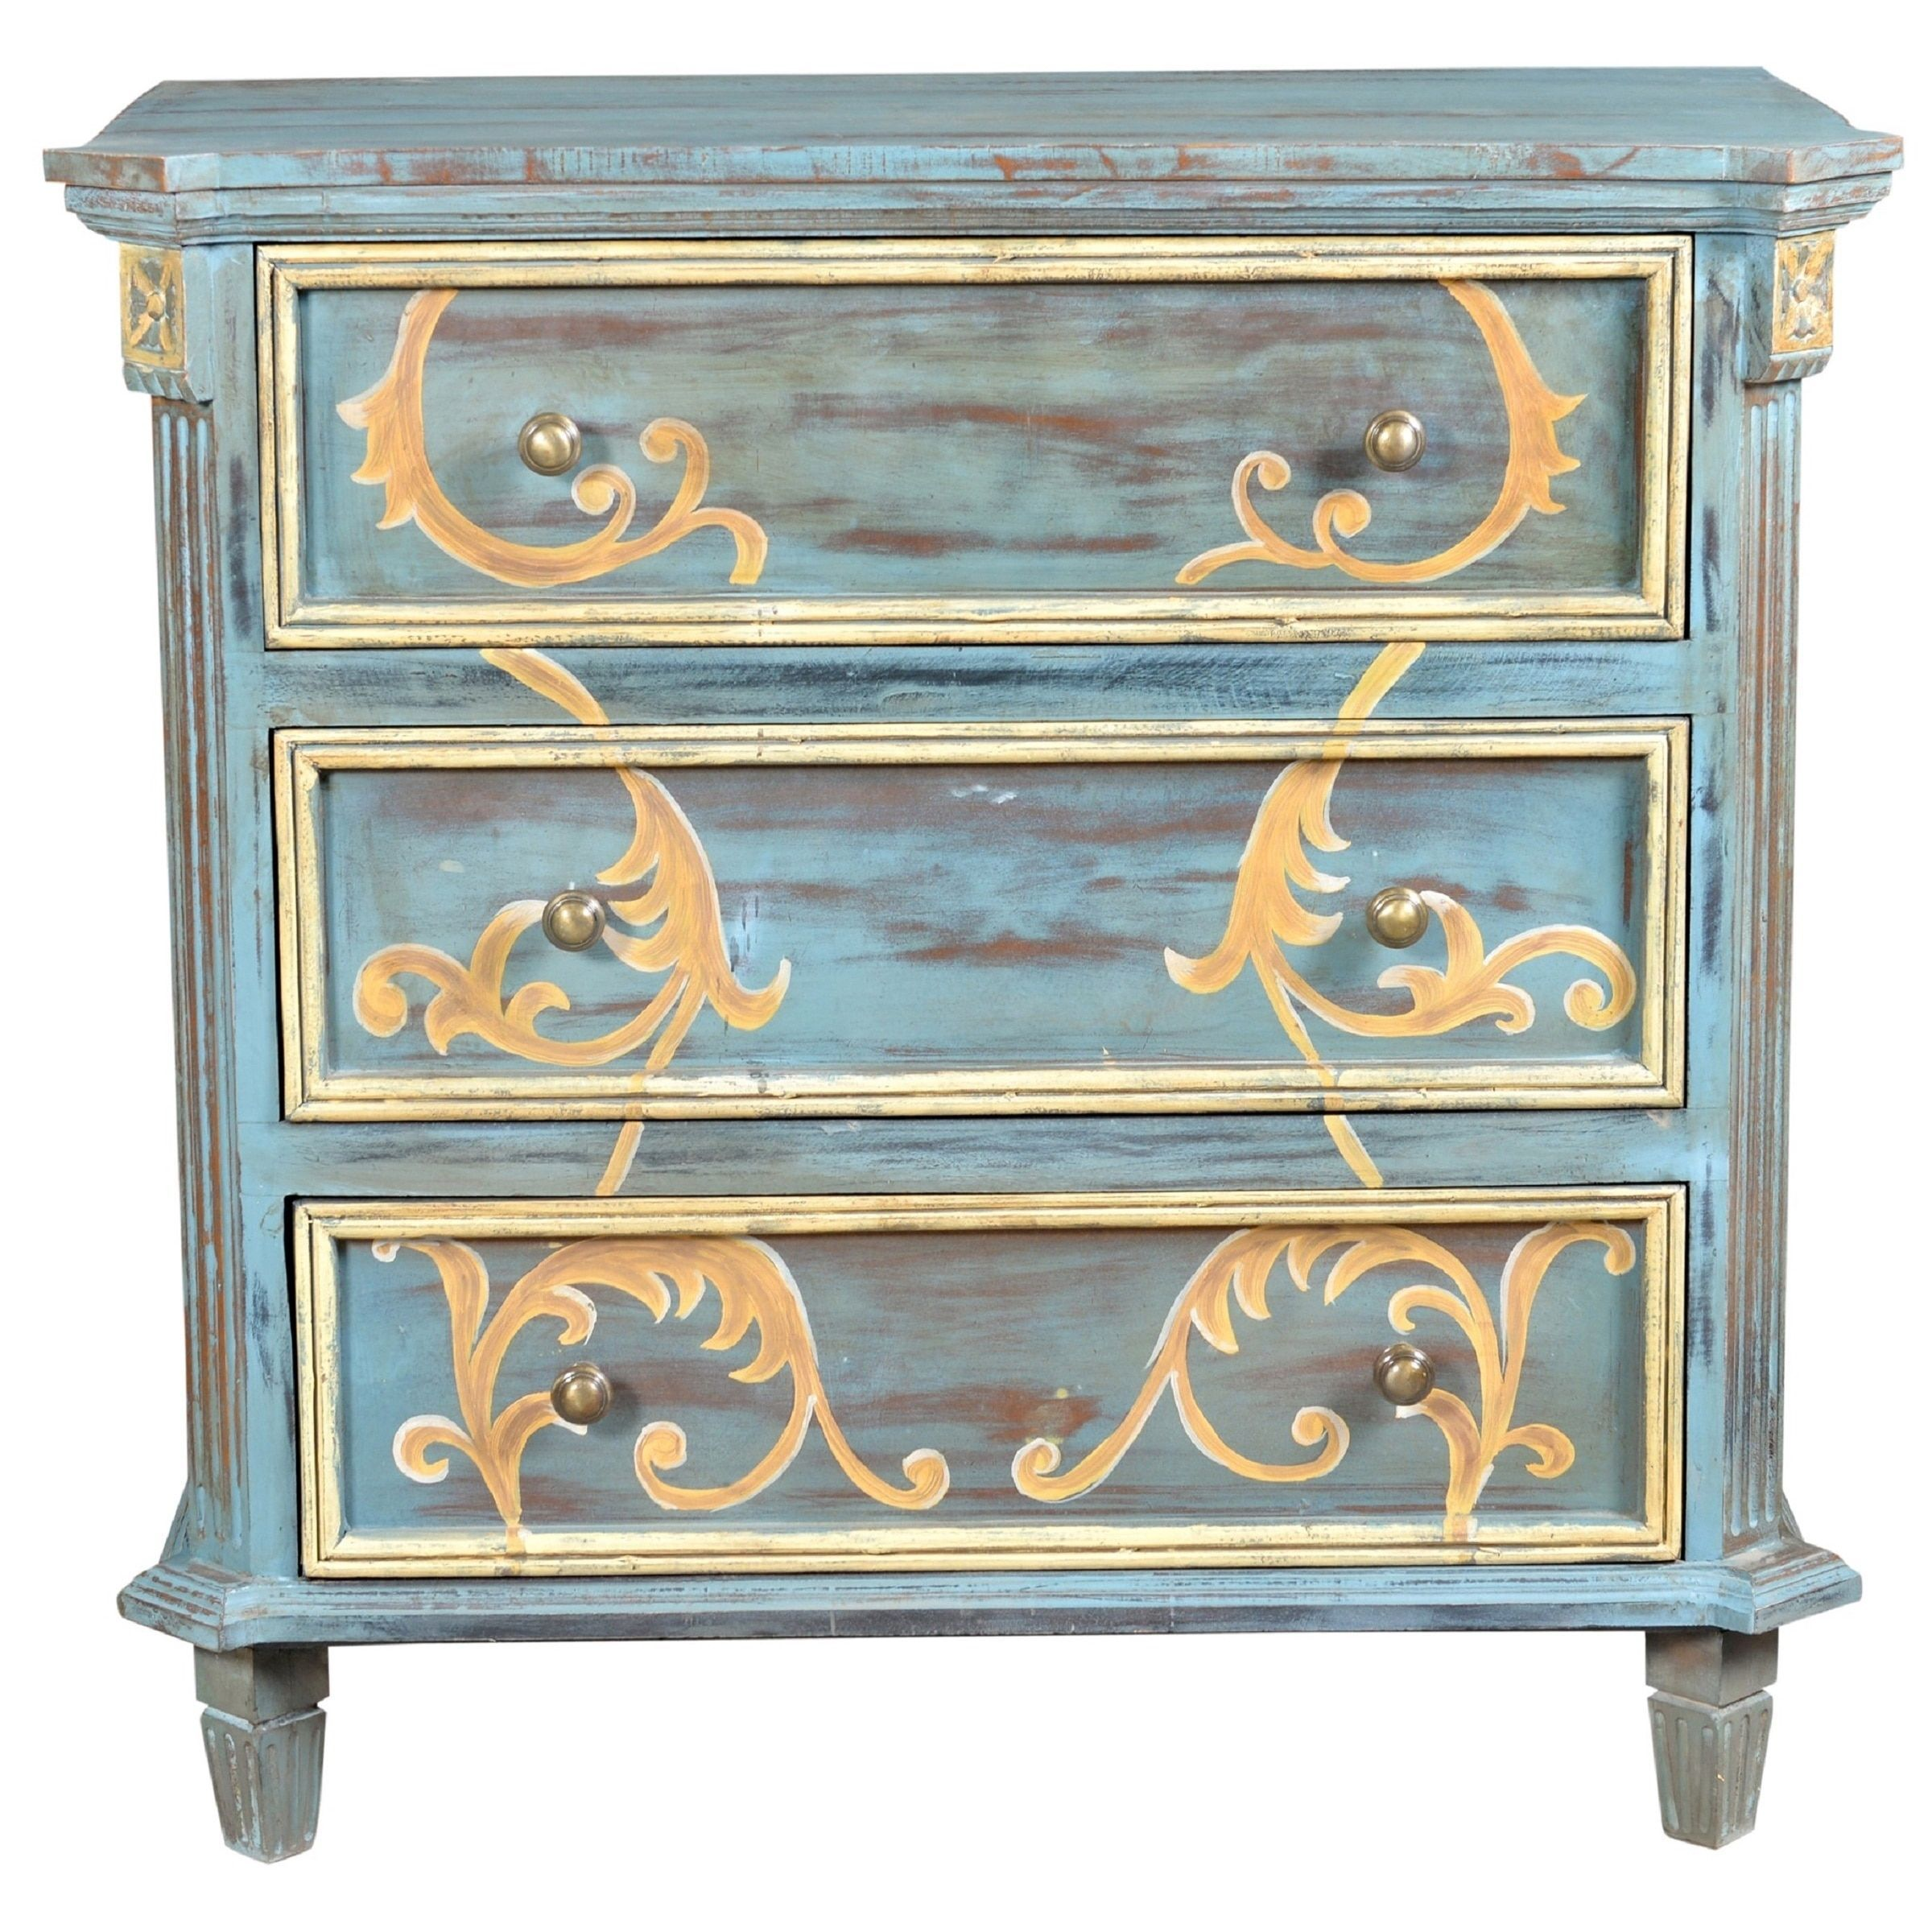 elk lighting chanda blue three drawer accent chest painted tables chests wood living room furniture piece dining set pedestal legs gold color coffee table entrance hall patio